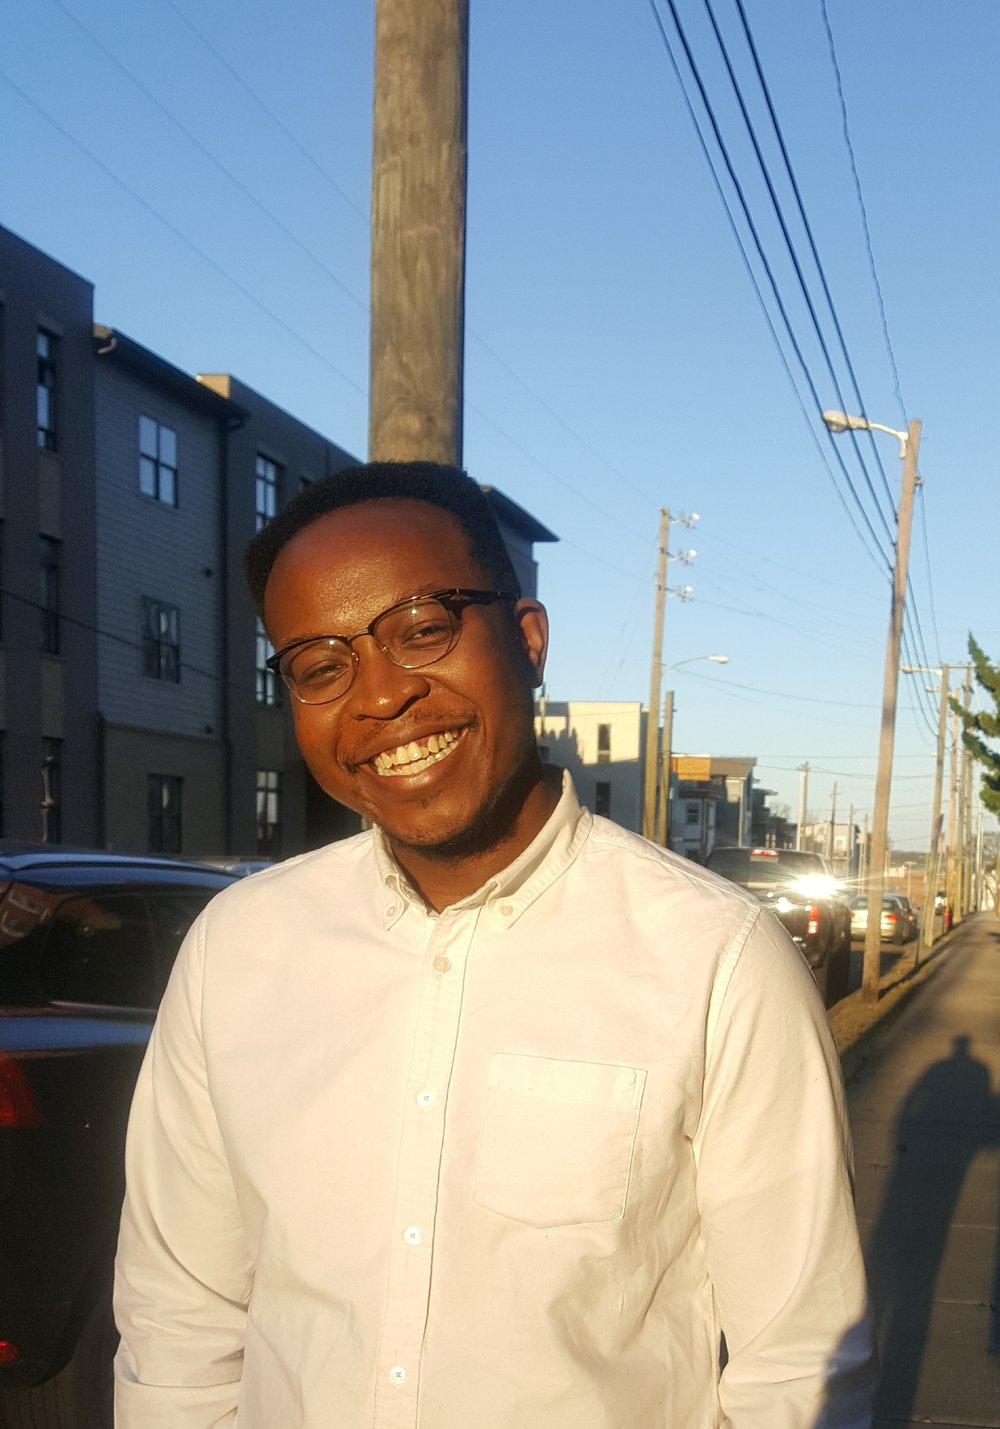 - Olatunde Osinaike is a Nigerian-American poet and software developer from the West Side of Chicago. He is the author of The New Knew, forthcoming from Thirty West Publishing House in the spring of 2019. A Best of the Net, Bettering American Poetry, and two-time Pushcart Prize nominee, his poems 'Mercy, Mercy Me' and 'When My Mother Speaks of New Edition' were recently selected by Kyle Dargan and the tandem of Safia Elhillo and Gbenga Adesina for inclusion in the 2018 Best New Poets and 20.35 Africa: Contemporary Poetry anthologies, respectively. An alumnus of Vanderbilt University, his most recent work has appeared, or is forthcoming, in RHINO, Glass: A Journal of Poetry, Apogee, Lunch Ticket, Puerto del Sol, and Columbia Poetry Review, among other publications. He is currently on poetry staff at The Adroit Journal. As a heads up, he is probably off rewatching The Office right now for the nth time, but you can find him on Twitter and Instagram at @tundelasoul, when he's not being as much of an introvert.Photo Credit: Audrianna Irving